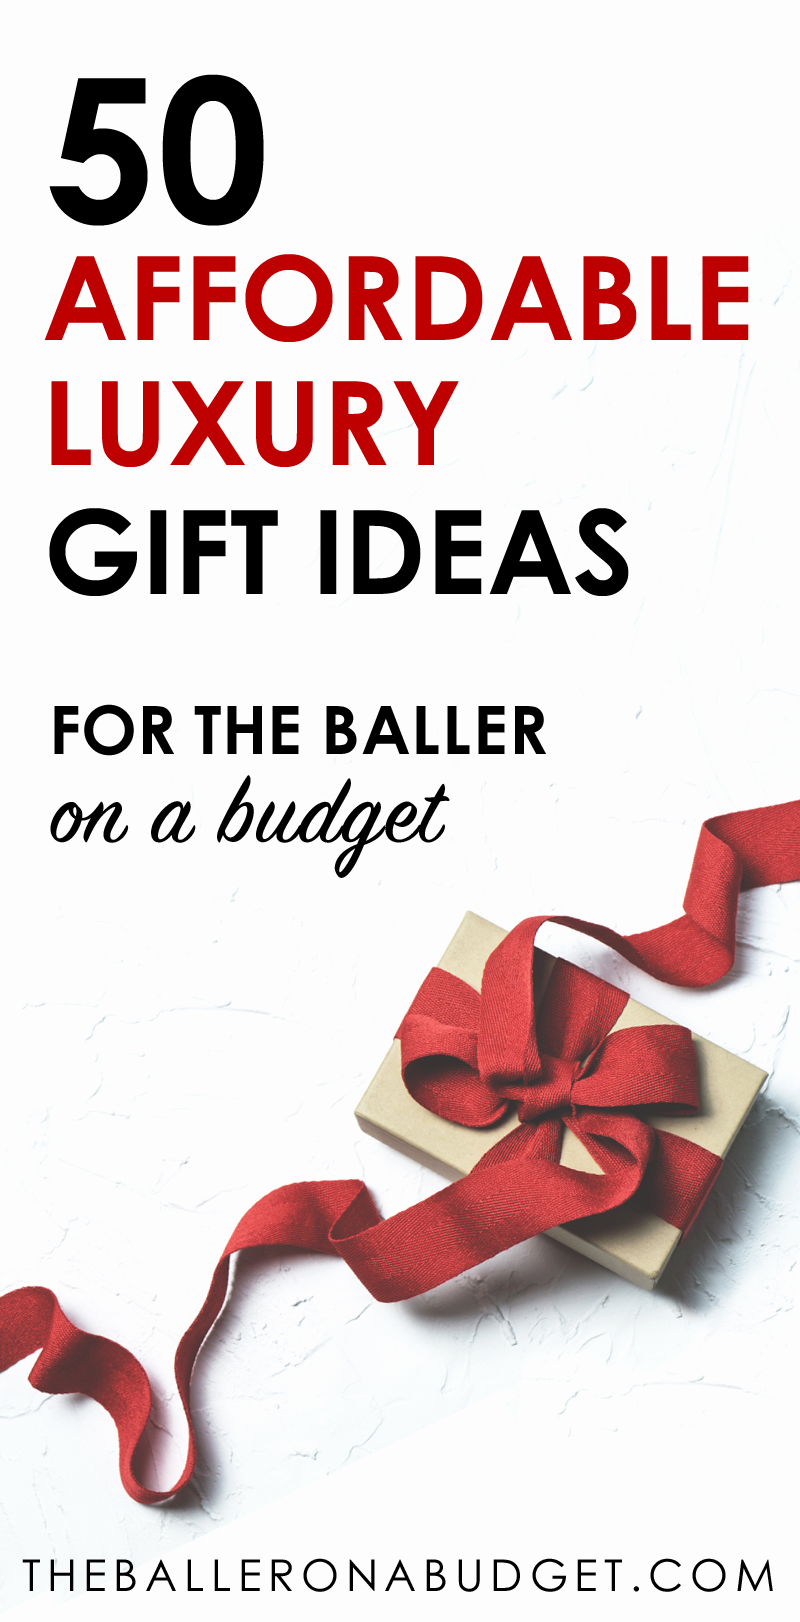 Looking for the perfect budget-friendly luxury gift? These 50 affordable luxury gift ideas that are sure to please. From Calvin Klein to Diesel and dupes of expensive brands like Rolex, Celine, Hermes and more, this is the ultimate affordable luxury gift guide for the baller on a budget! - www.theballeronabudget.com